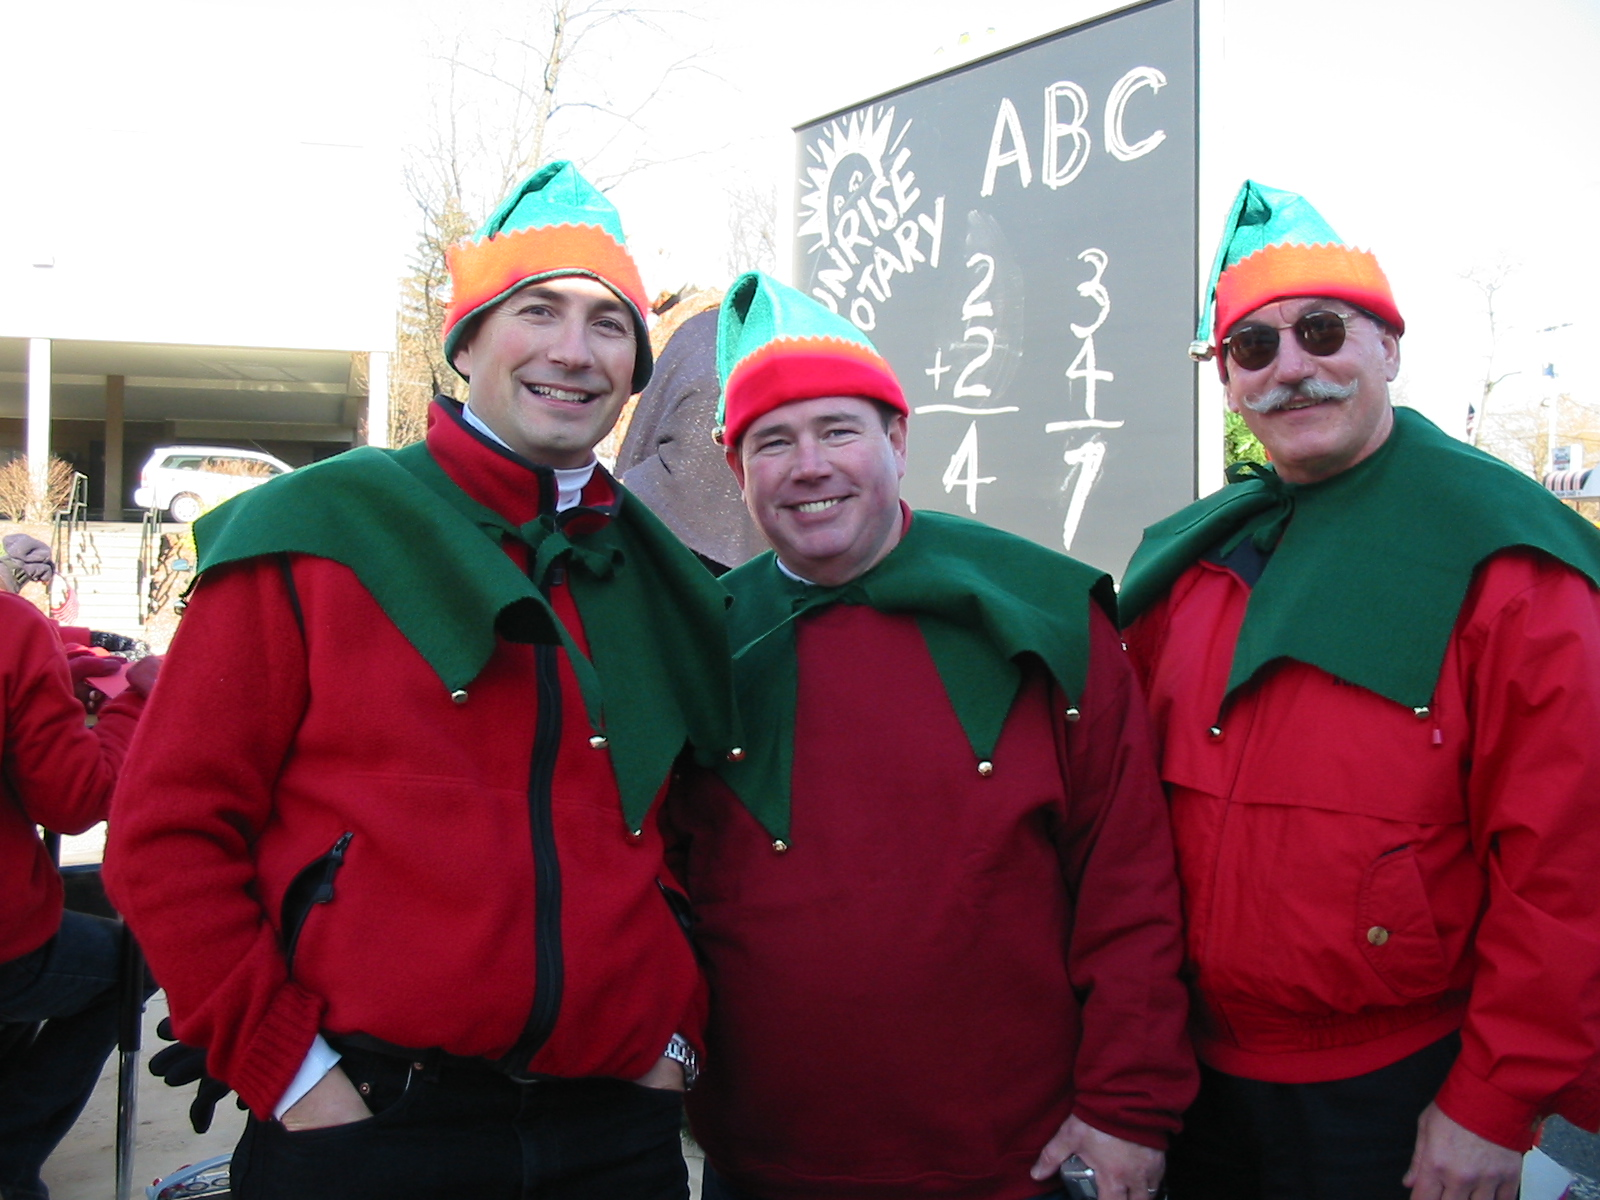 2003_Holiday_Parade_Denville___2_.JPG